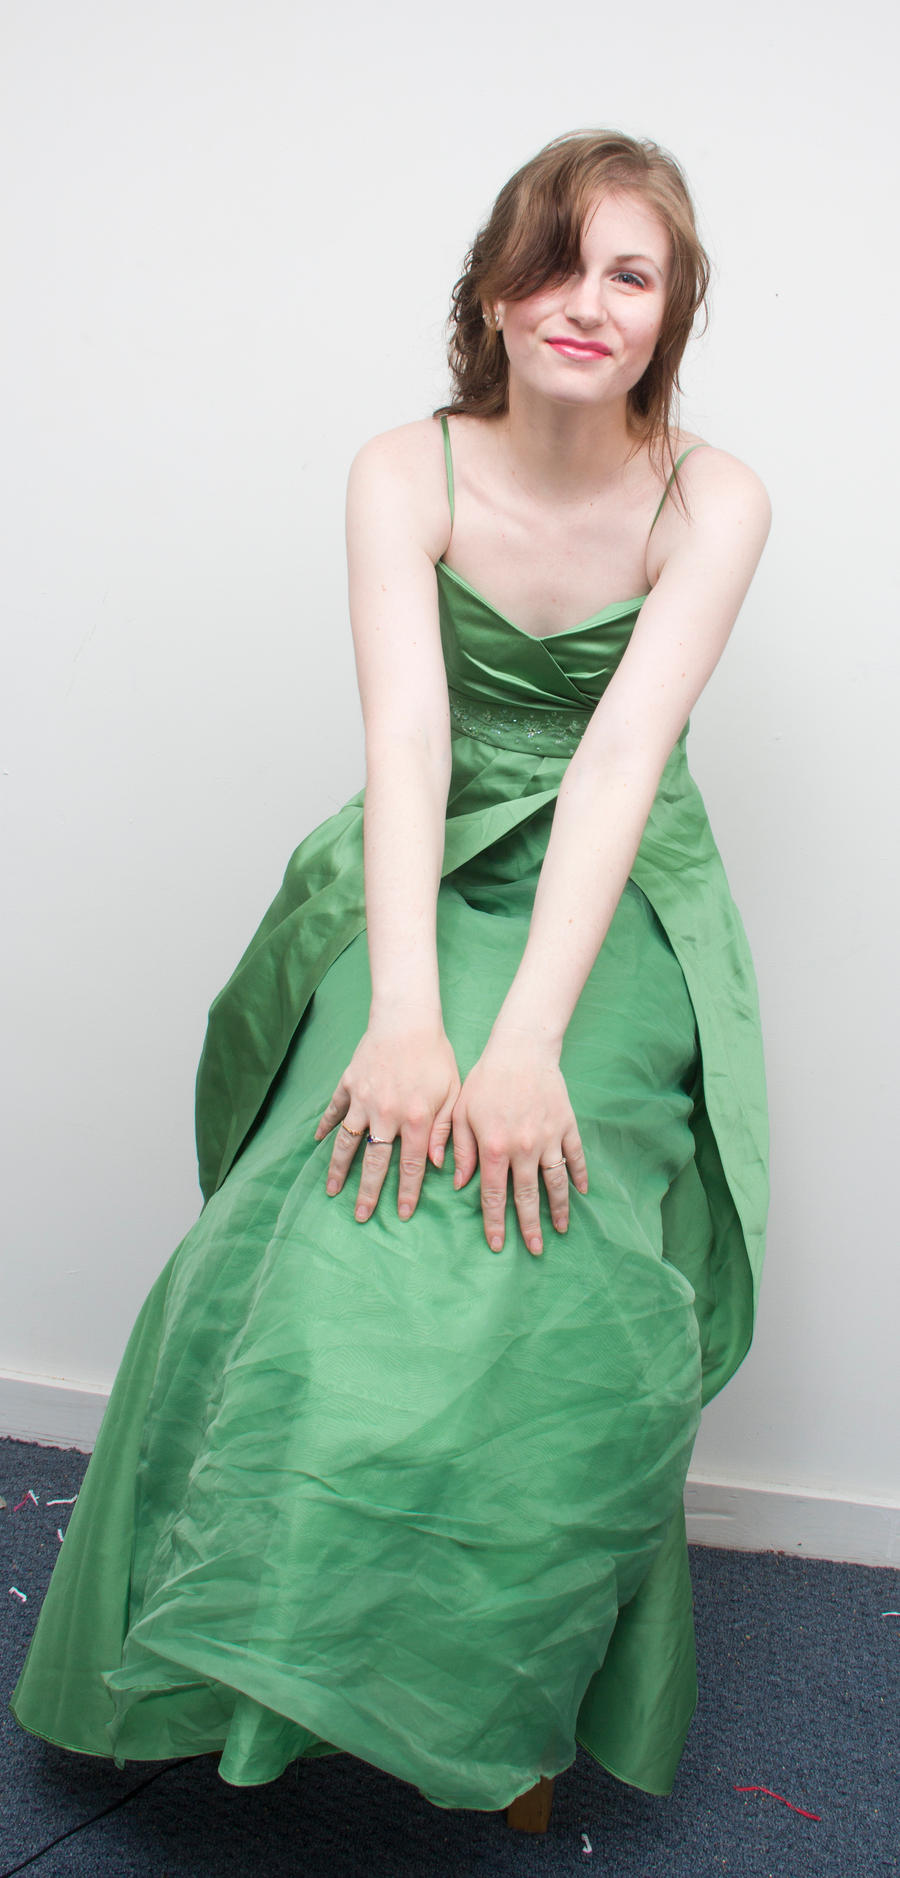 Green gown grin by Sinned-angel-stock